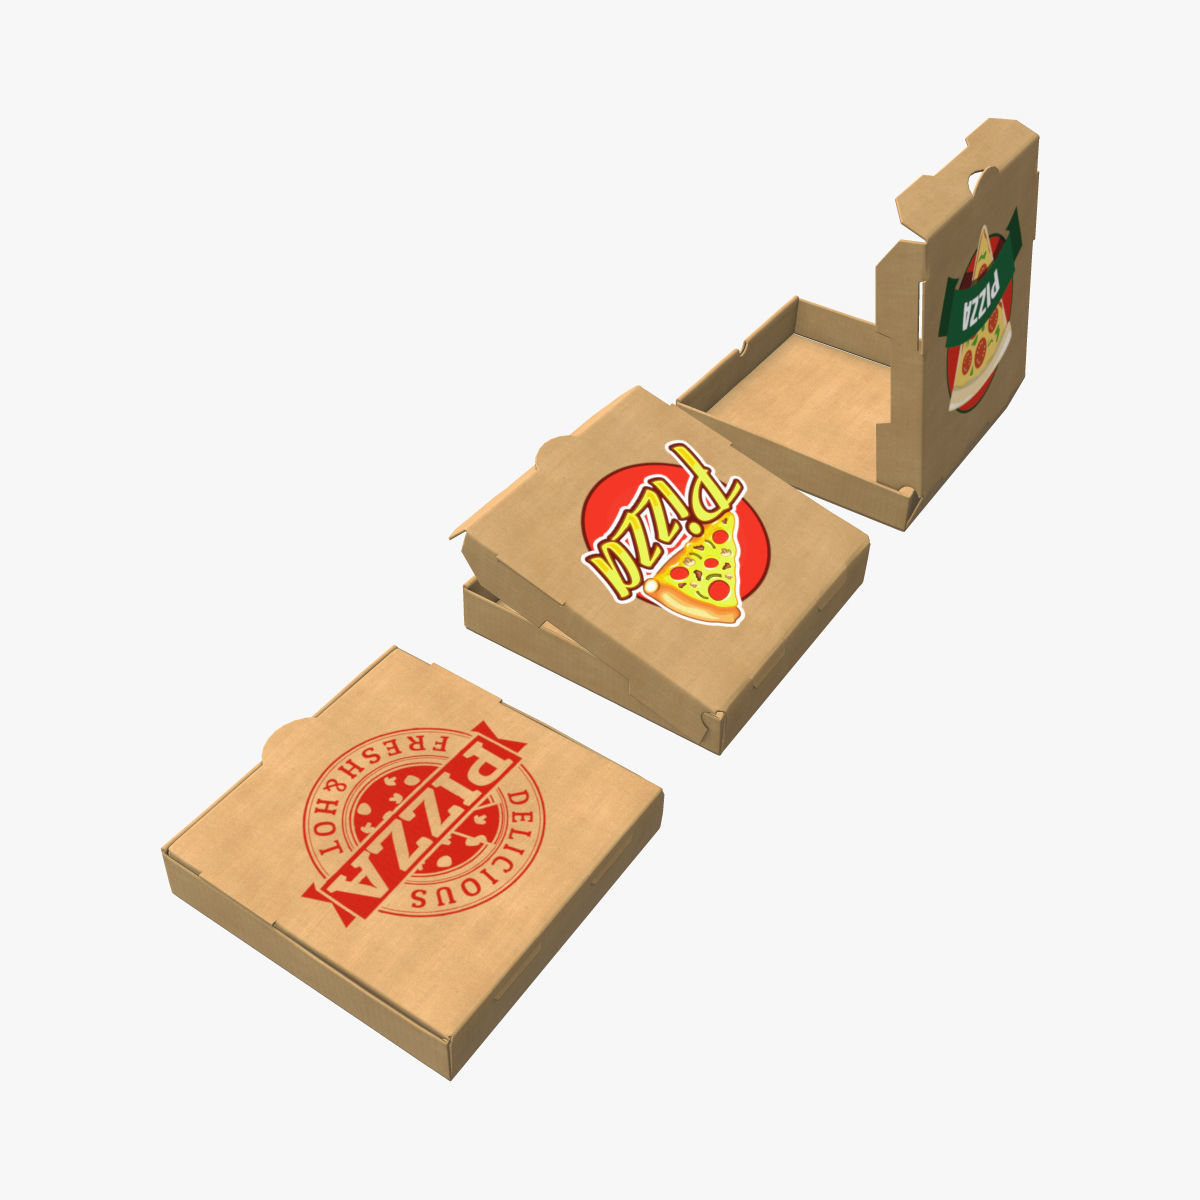 Cardboard box pizza